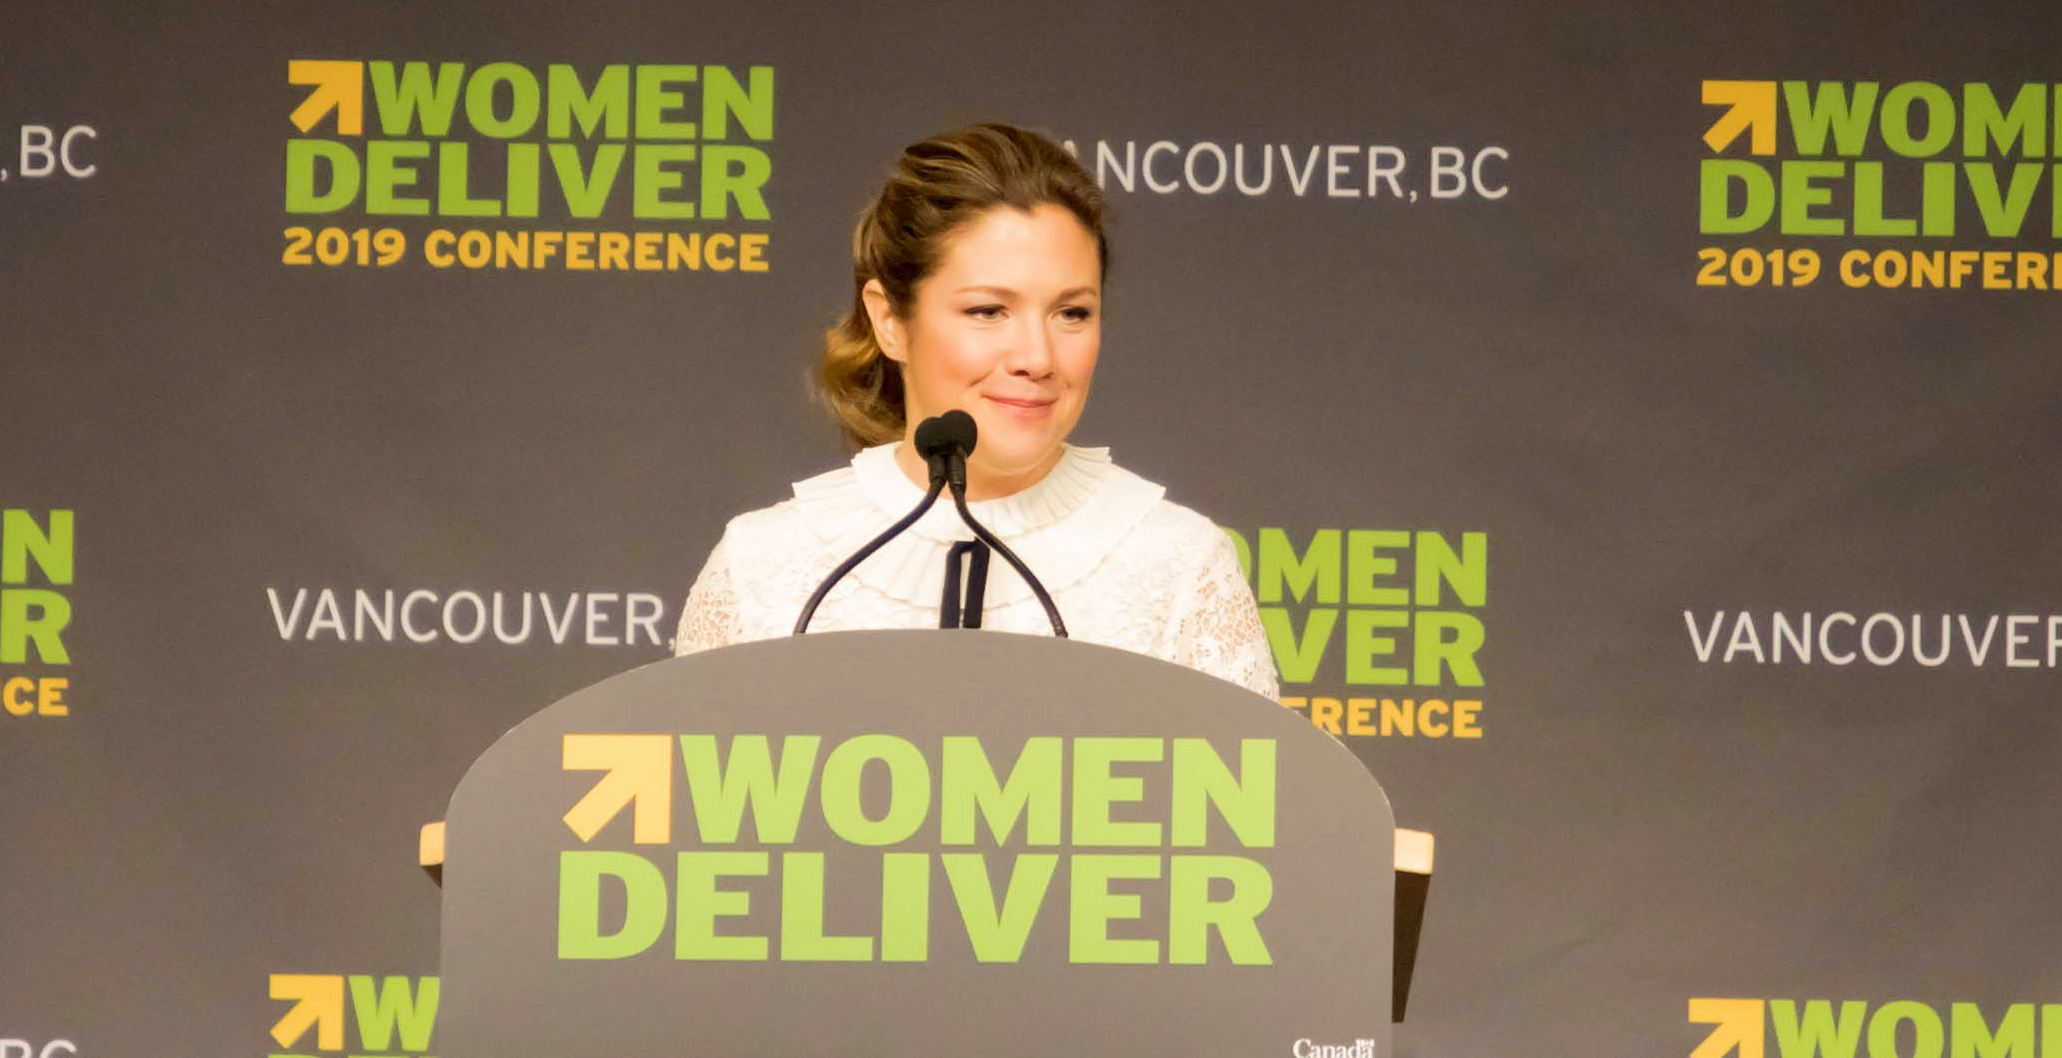 Sophie Grégoire Trudeau speaking about the Women Deliver 2019 conference (Jenni Sheppard/Daily Hive)